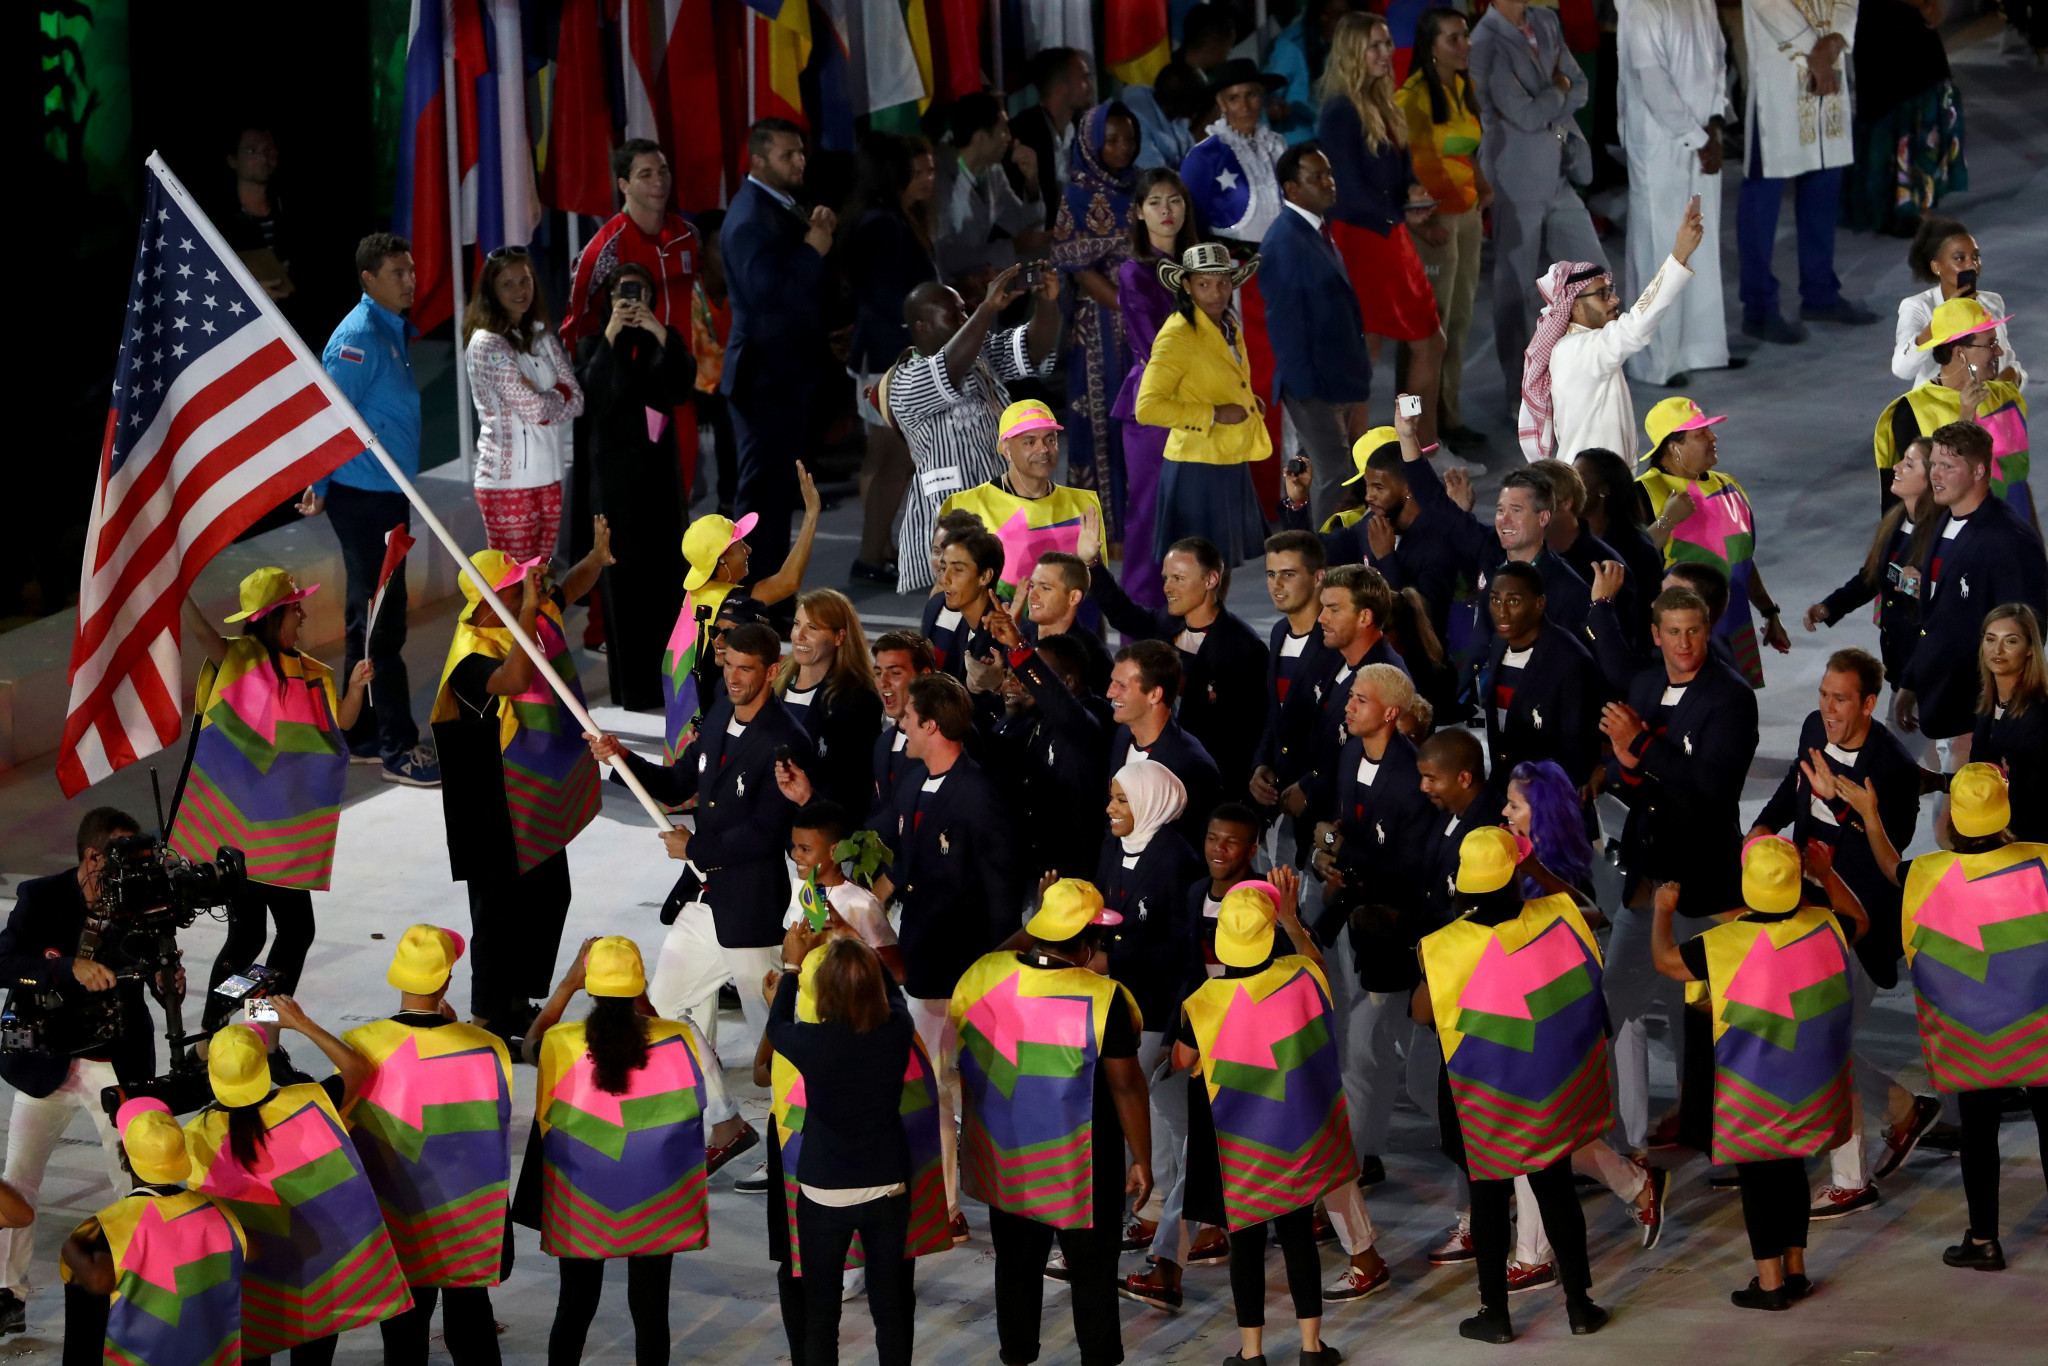 The United States have been given more prominence in the Tokyo 2020 parade ©Getty Images